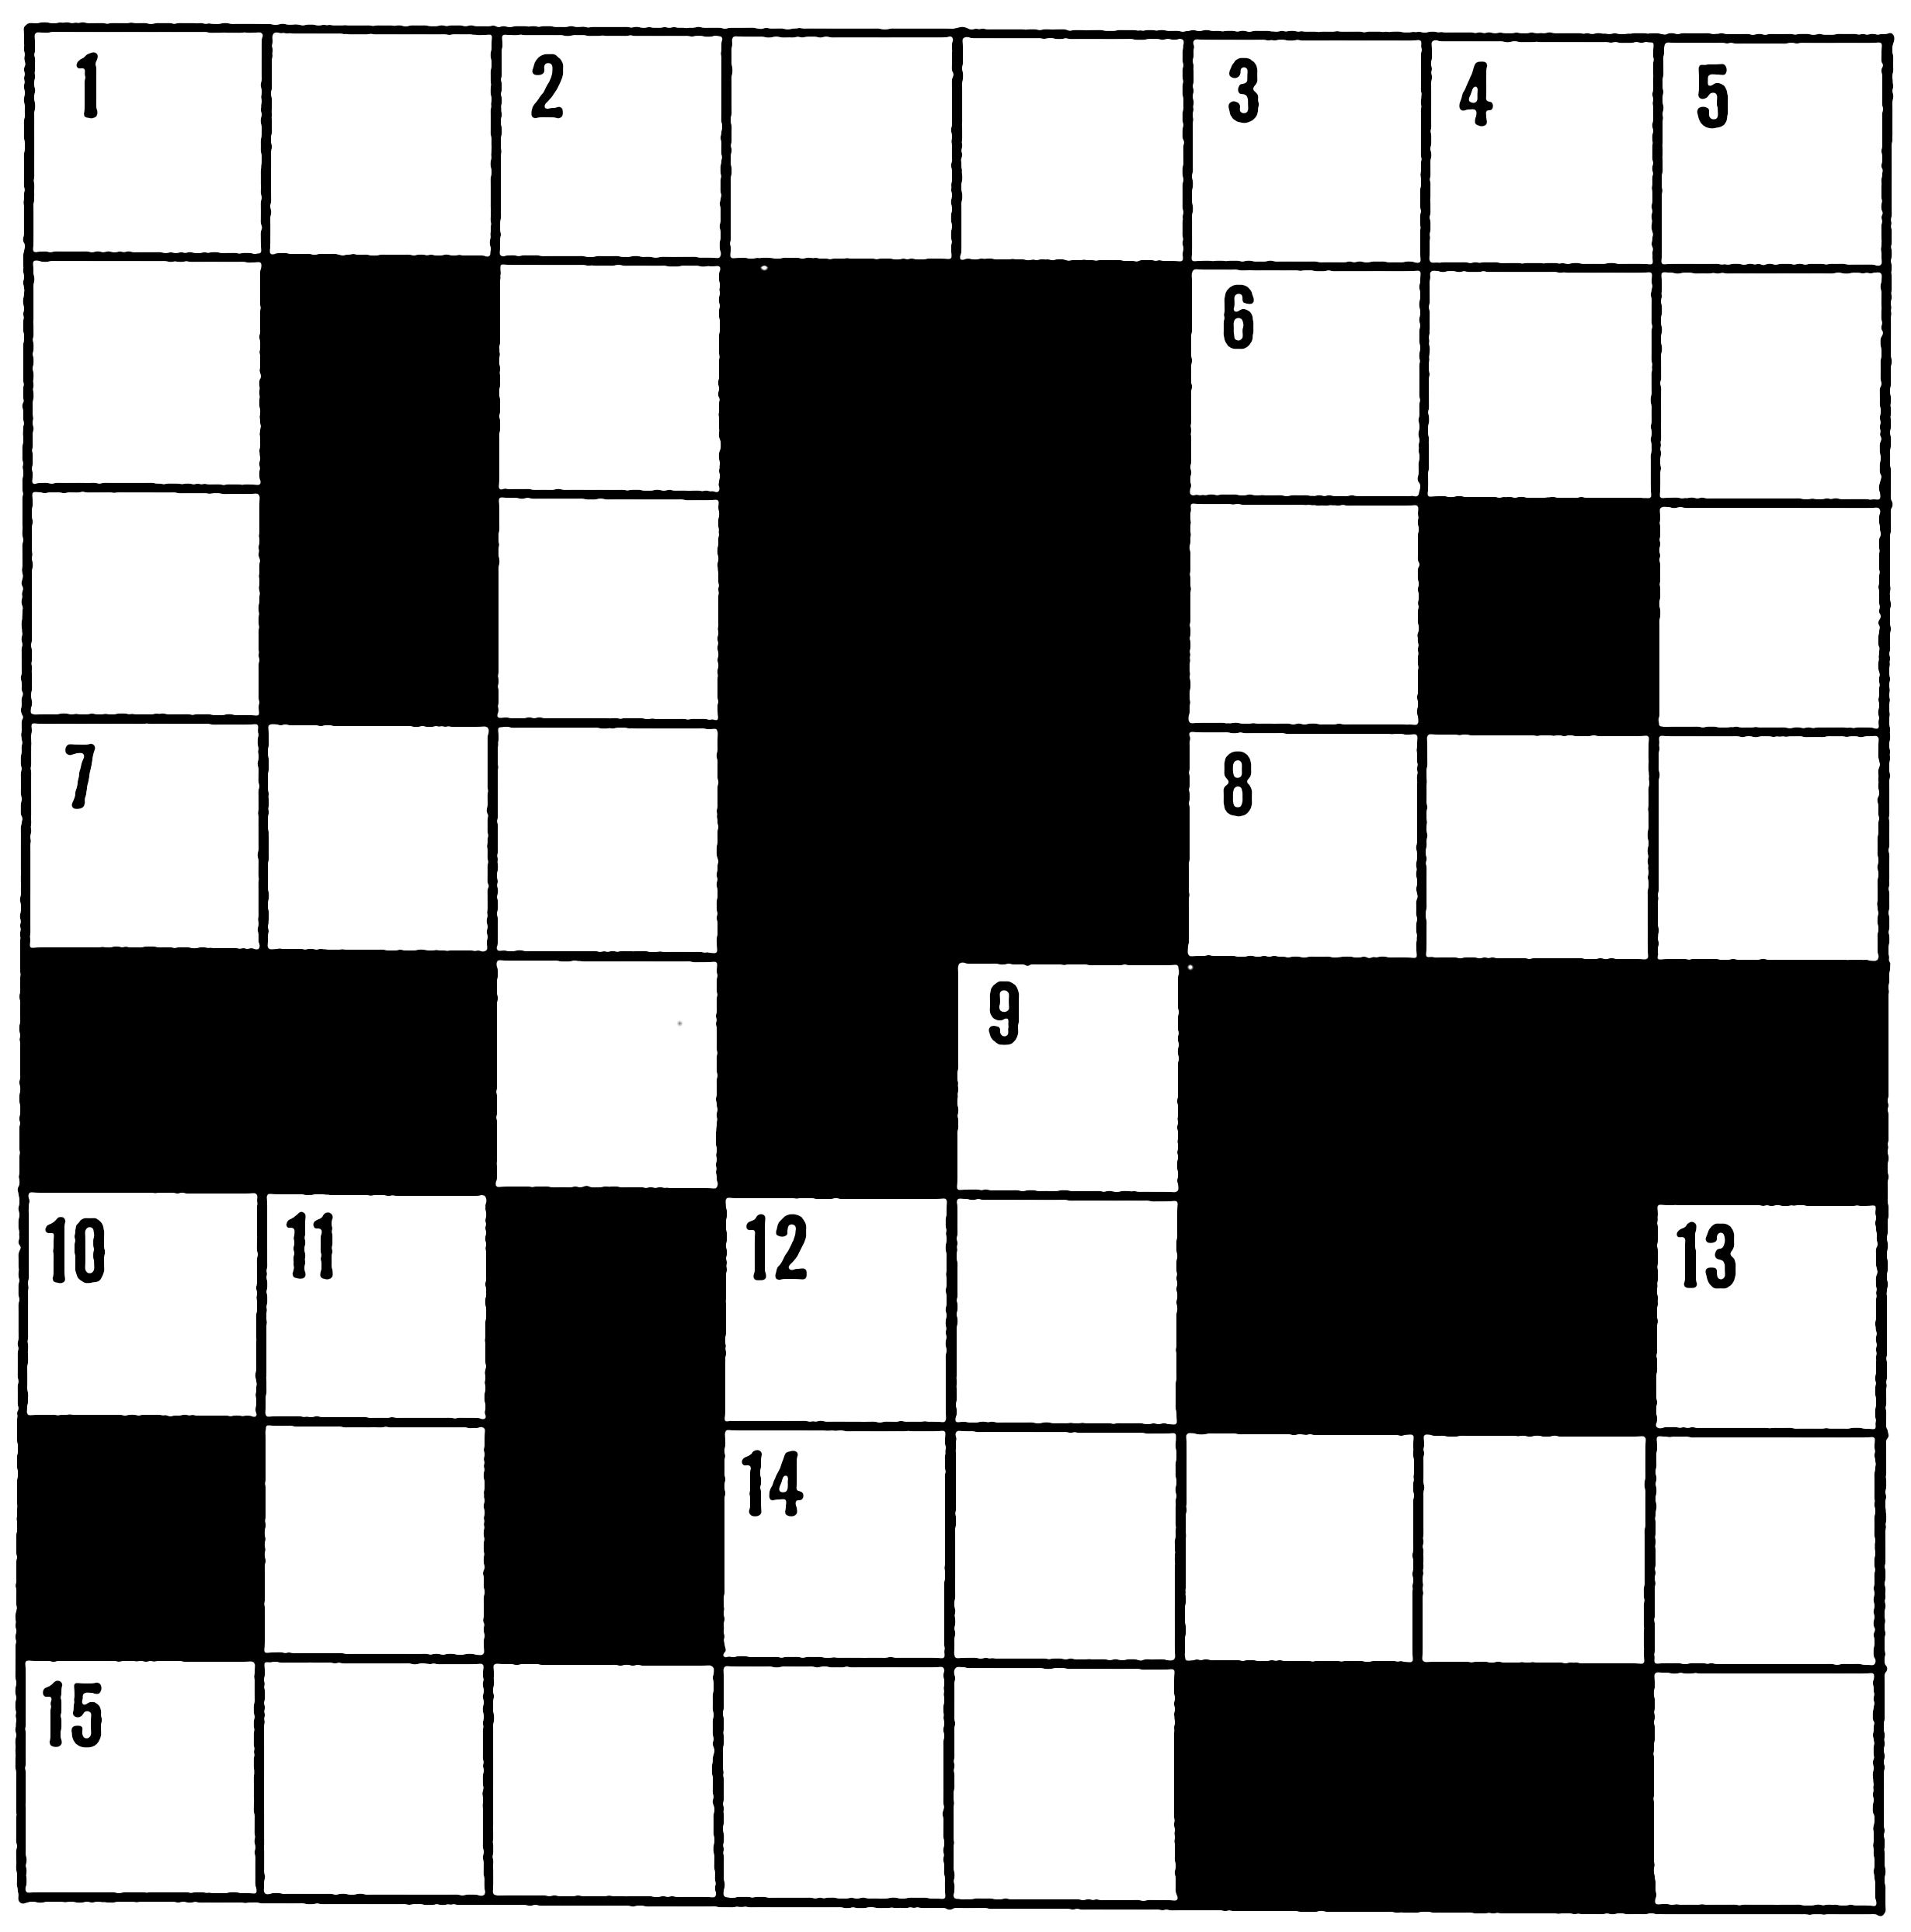 2461 x 2488 png 100kB, Description Crossword (PSF).png